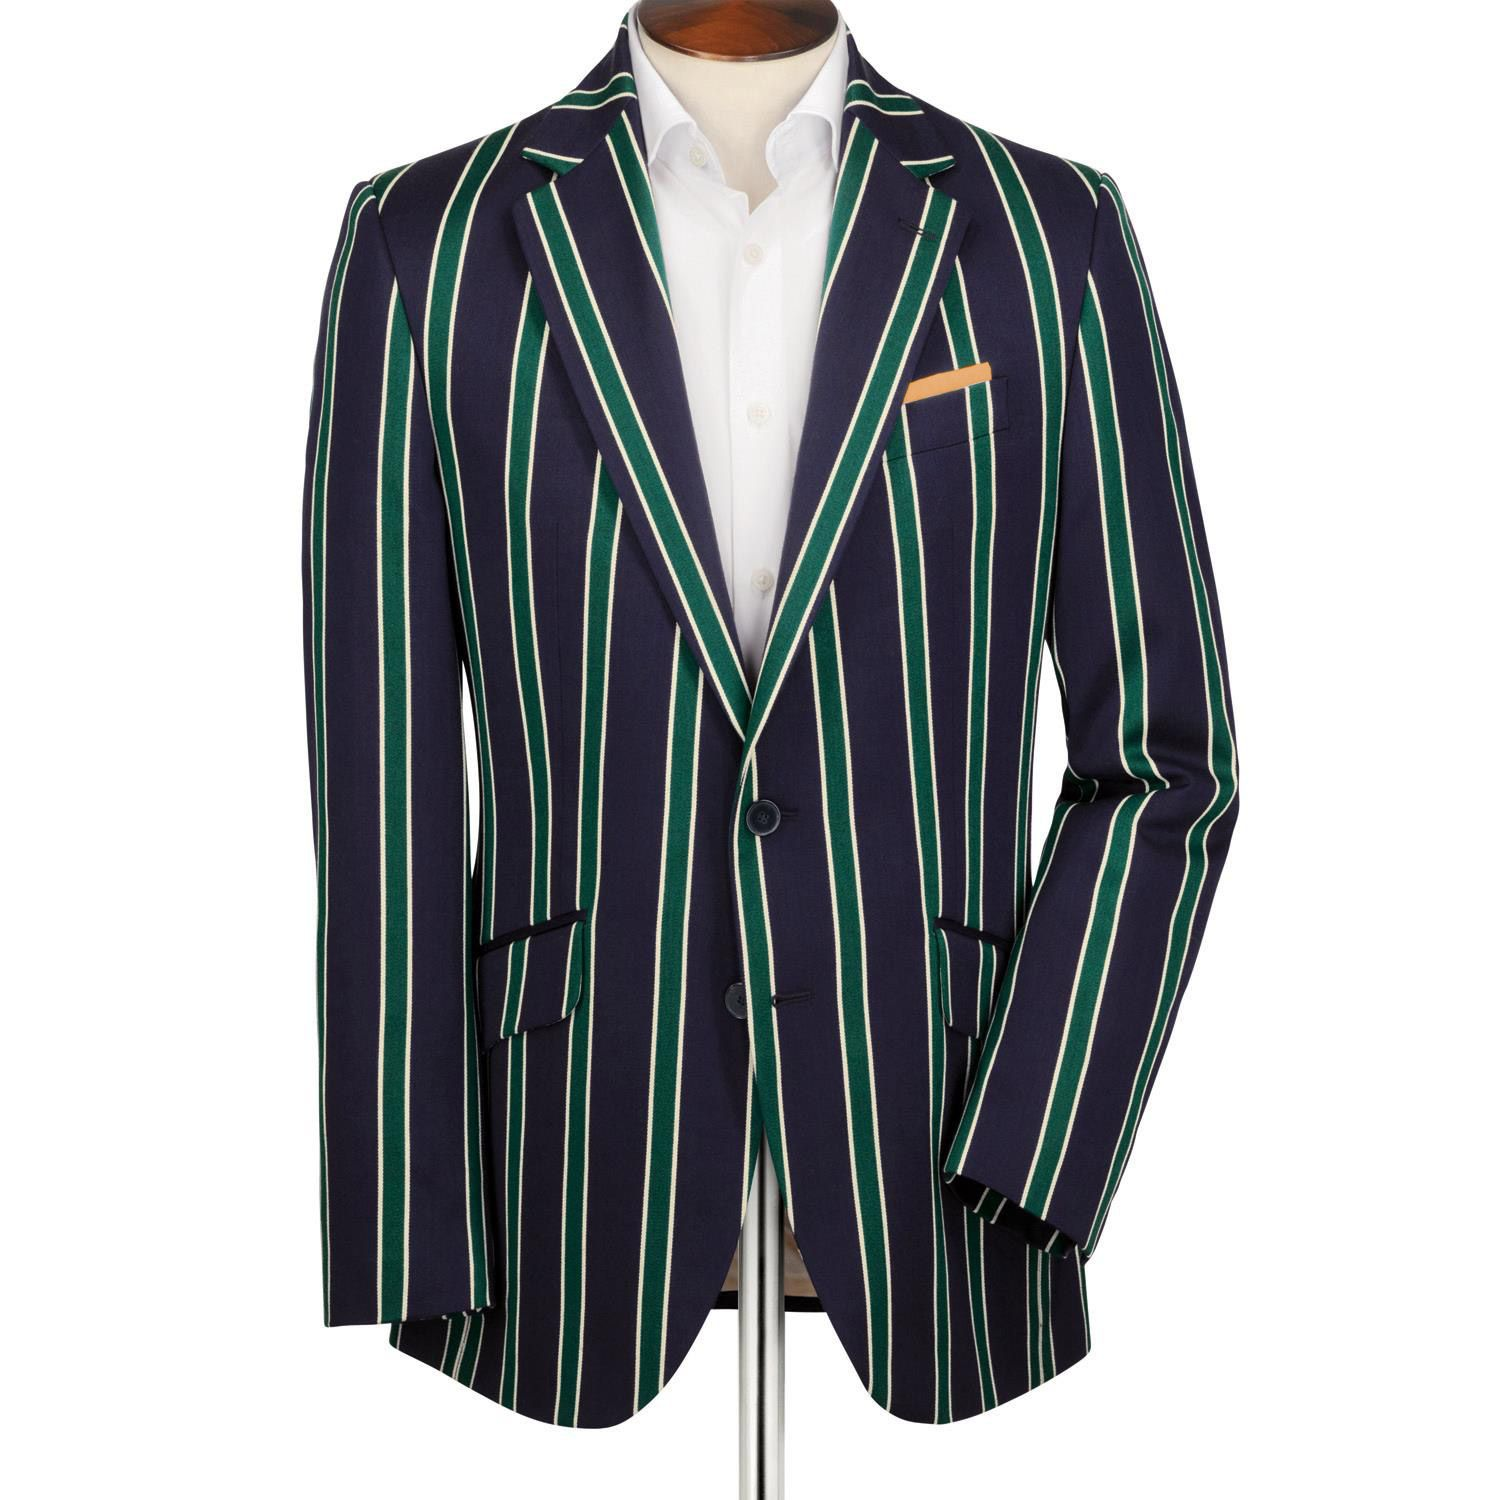 31e0fc06019 Navy and green striped boating Classic fit blazer